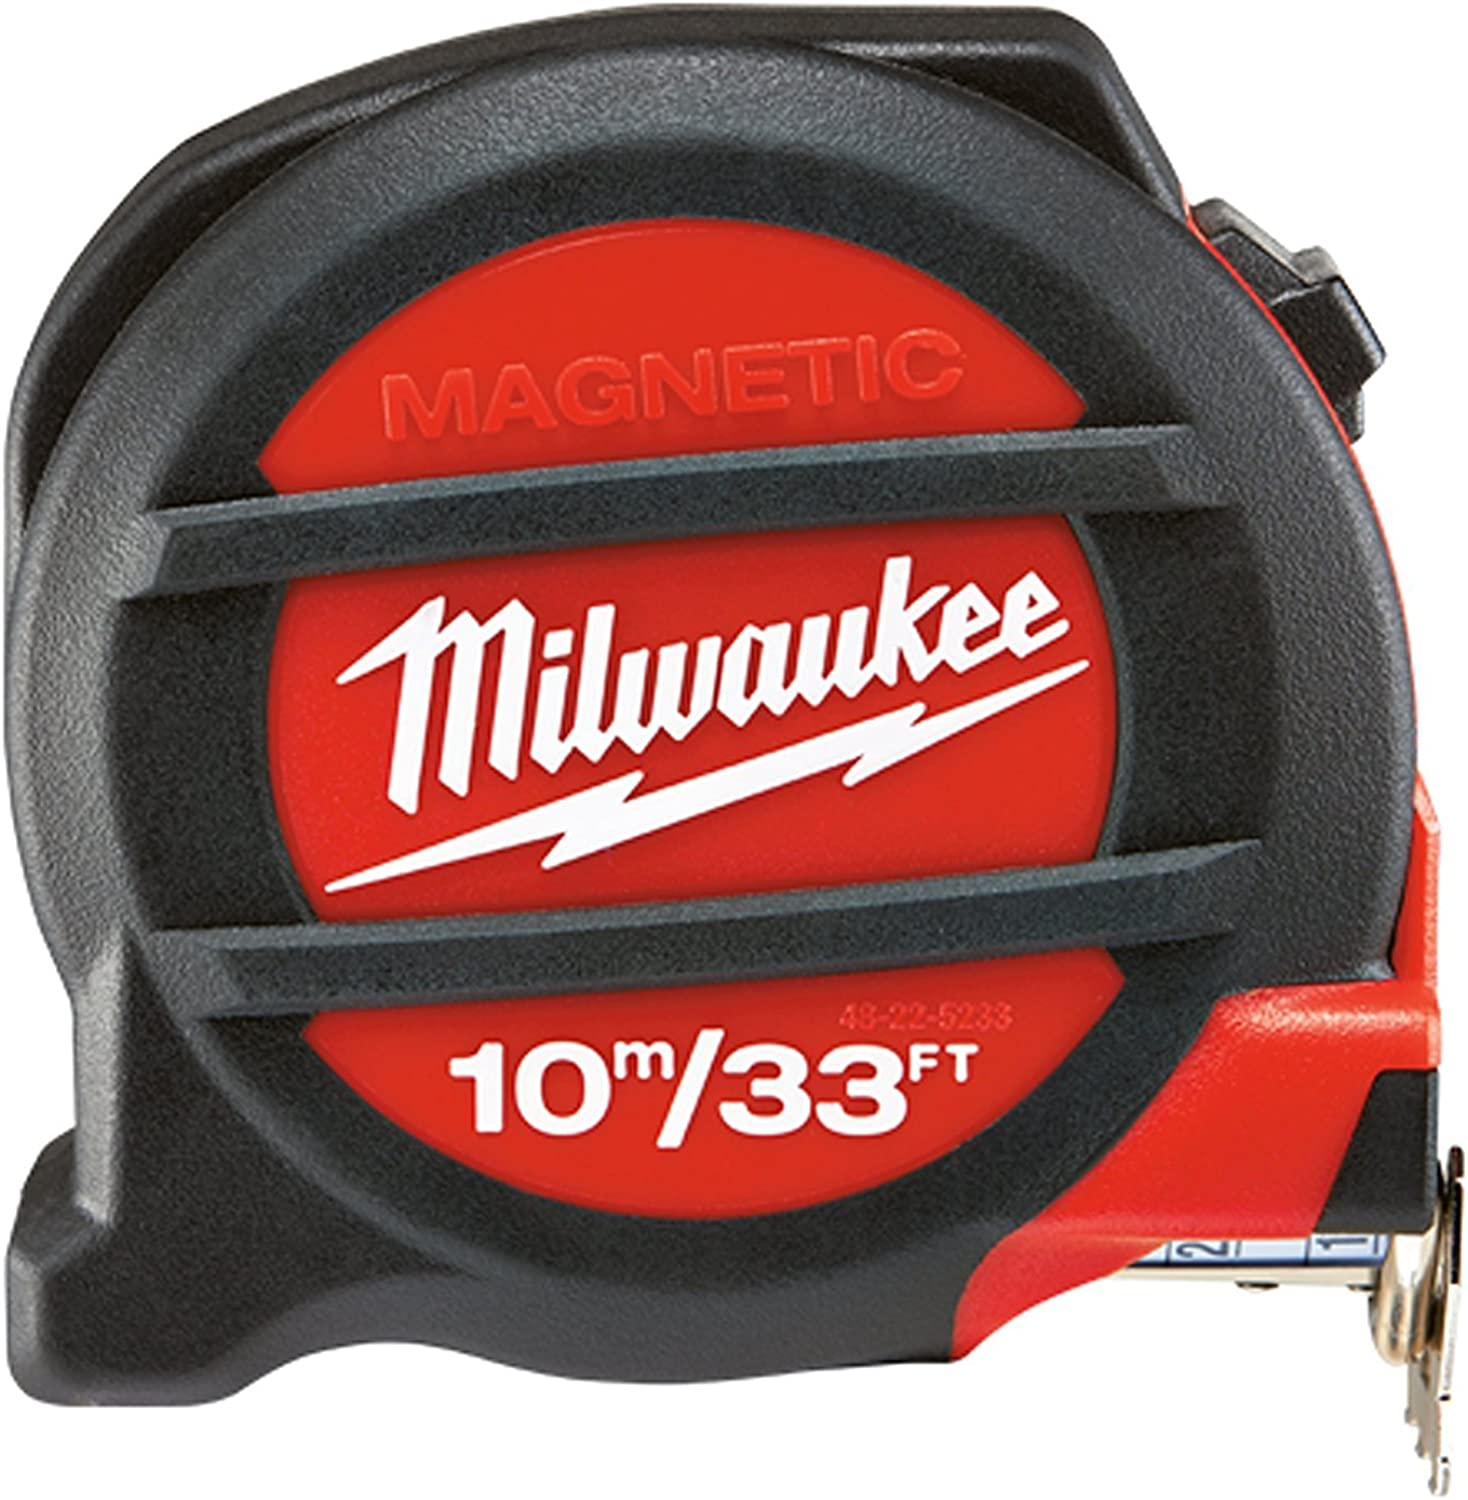 Milwaukee mil48225225 Pocket Pocket Pocket Tapes 10M   33FT Magnetic B077TPRTVN | Quality First